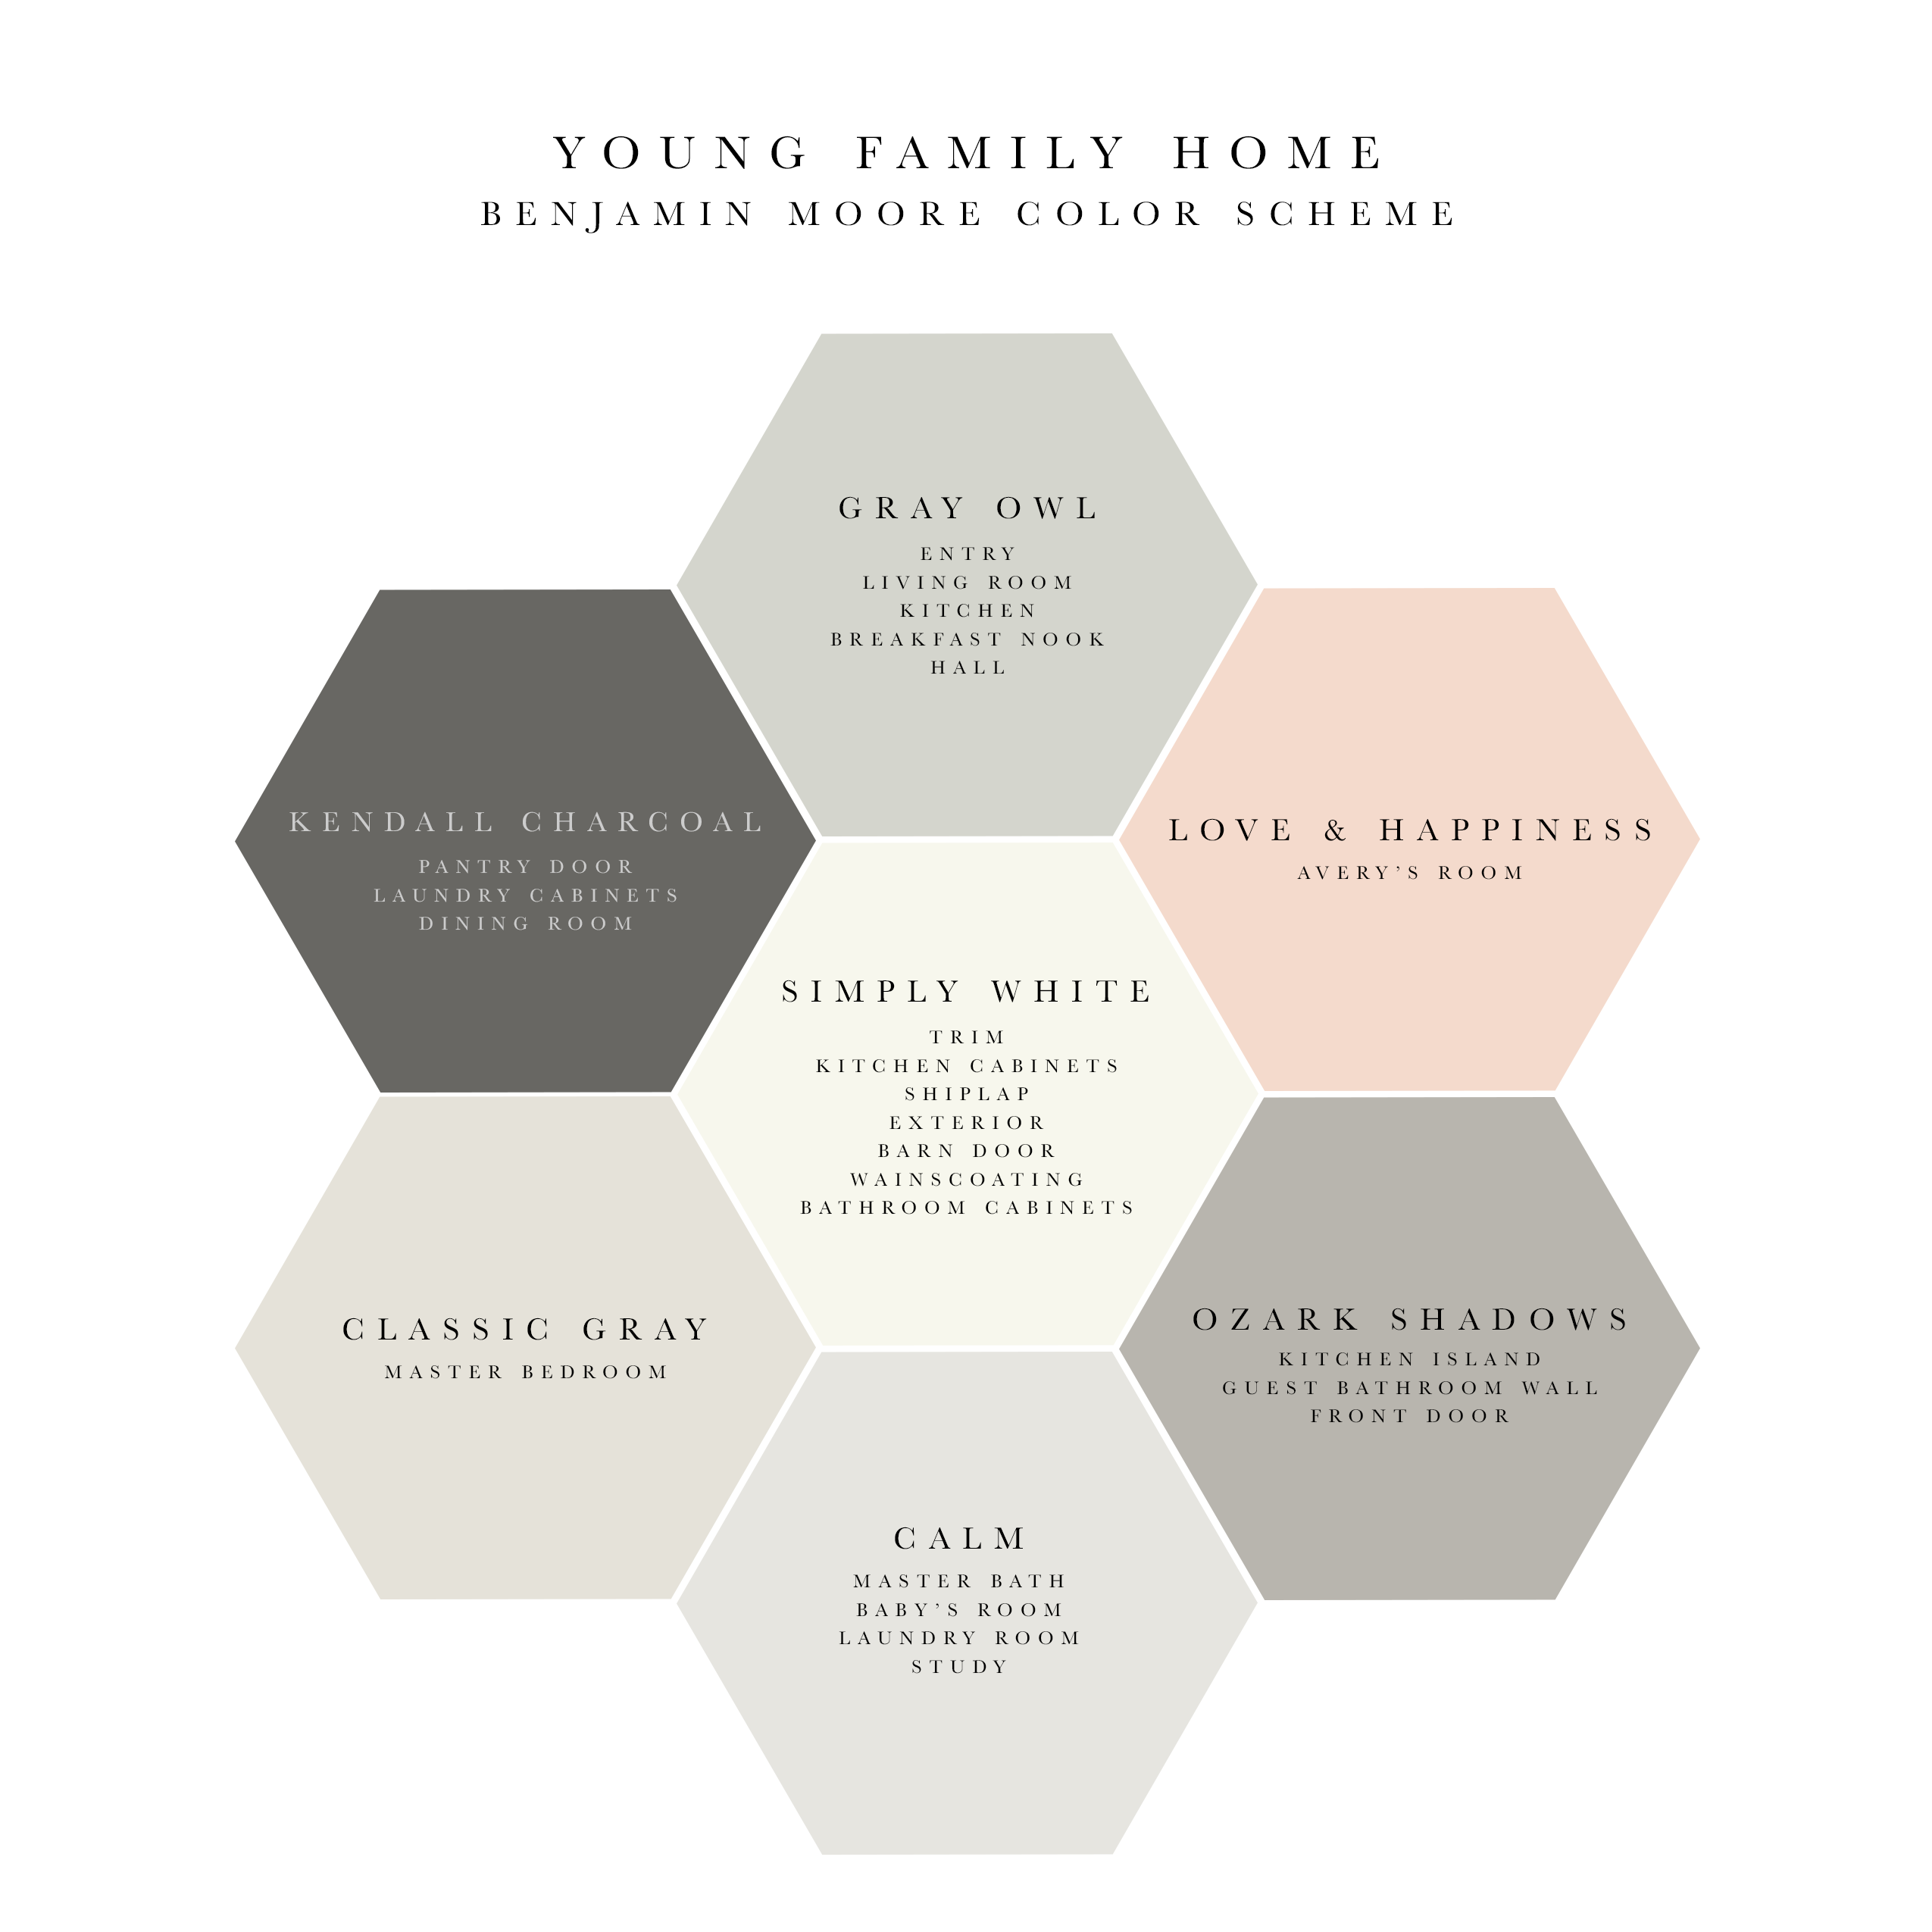 Soothing And Elegant Benjamin Moore Whole House Color Scheme For